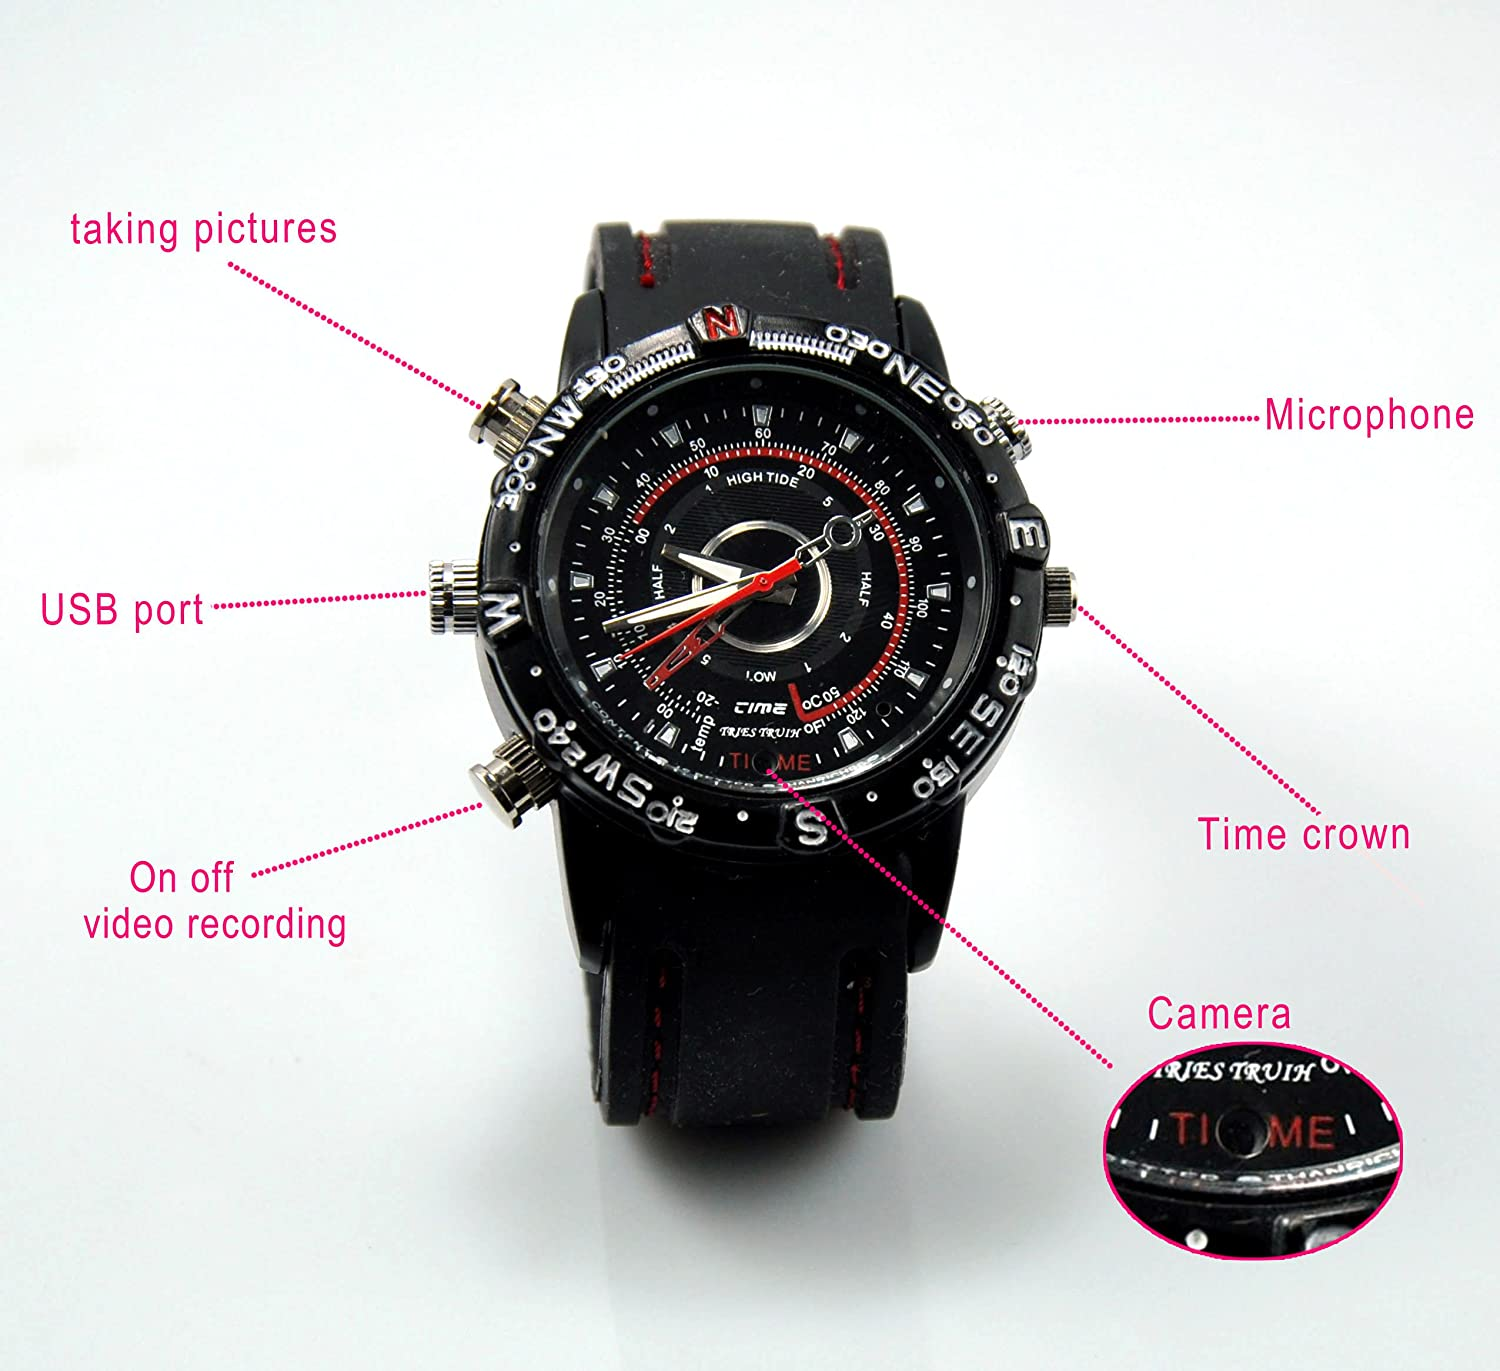 Đồng hồ tích hợp Camera Mini HD Waterproof Camera Watch Video Recorder